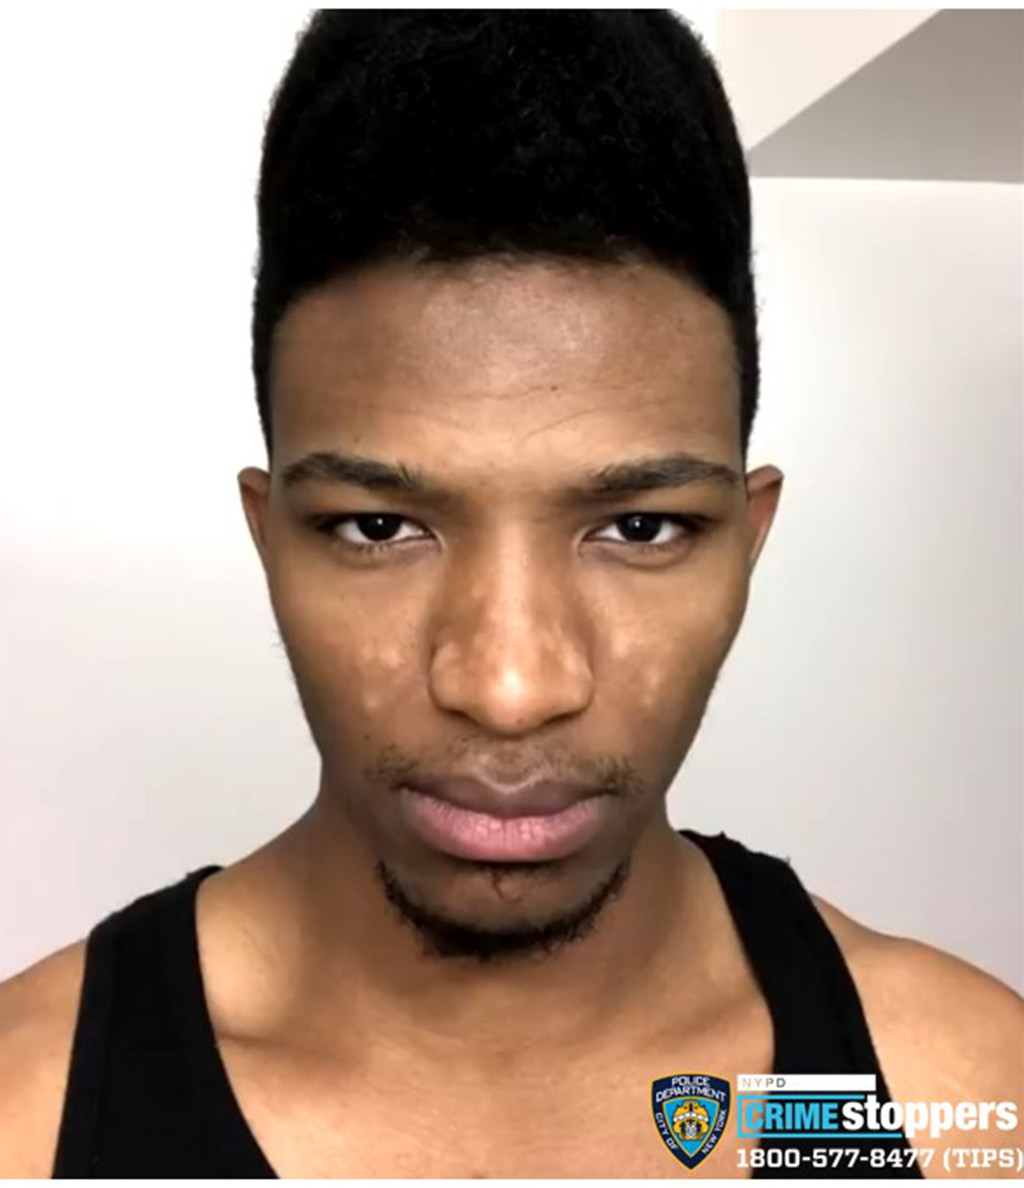 The Sad, Public Struggles of Etika and More Shocking YouTube Star